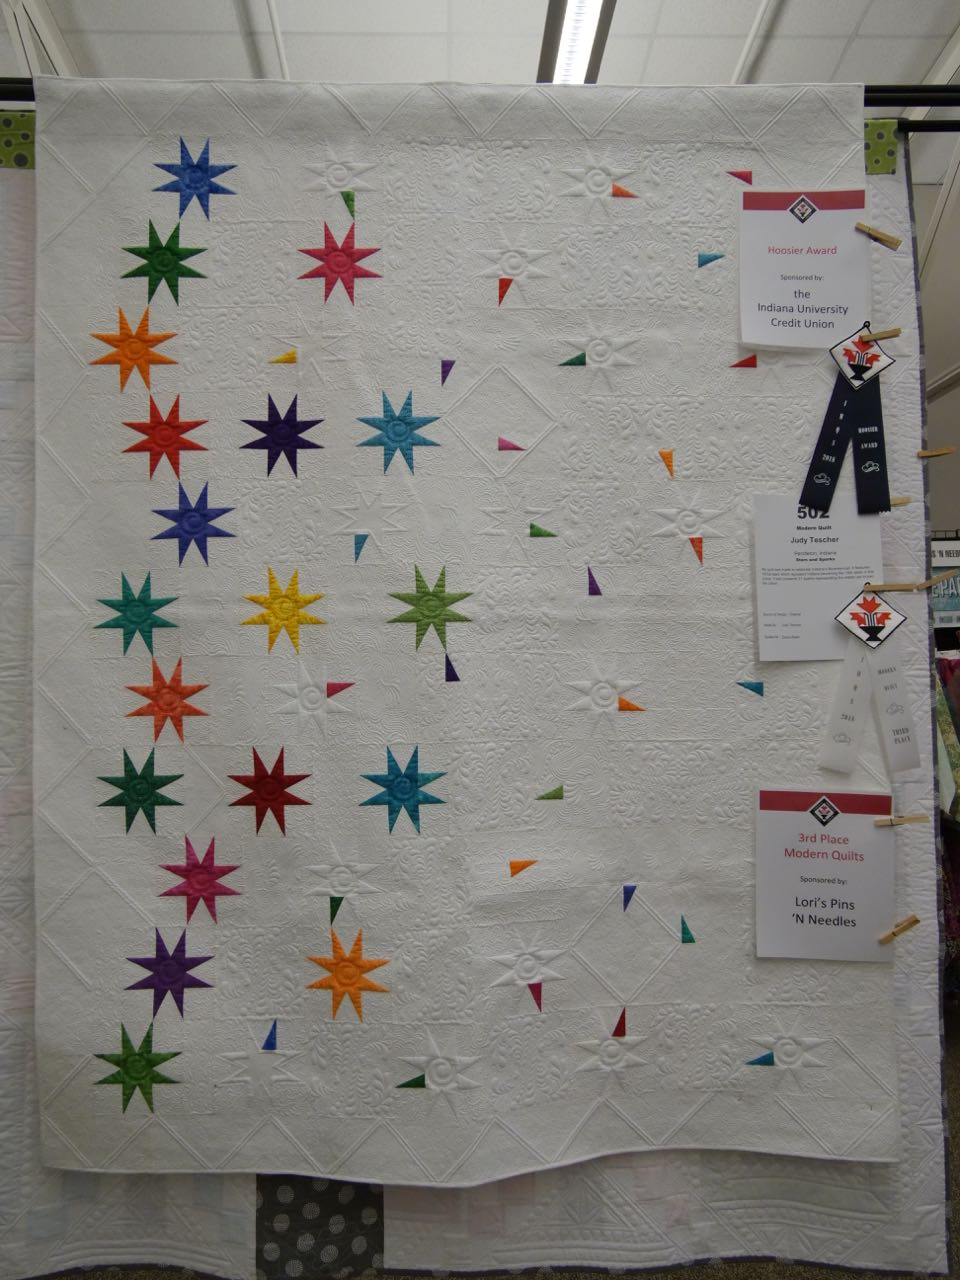 Stars and Sparks - 3rd Place, Modern Quilts